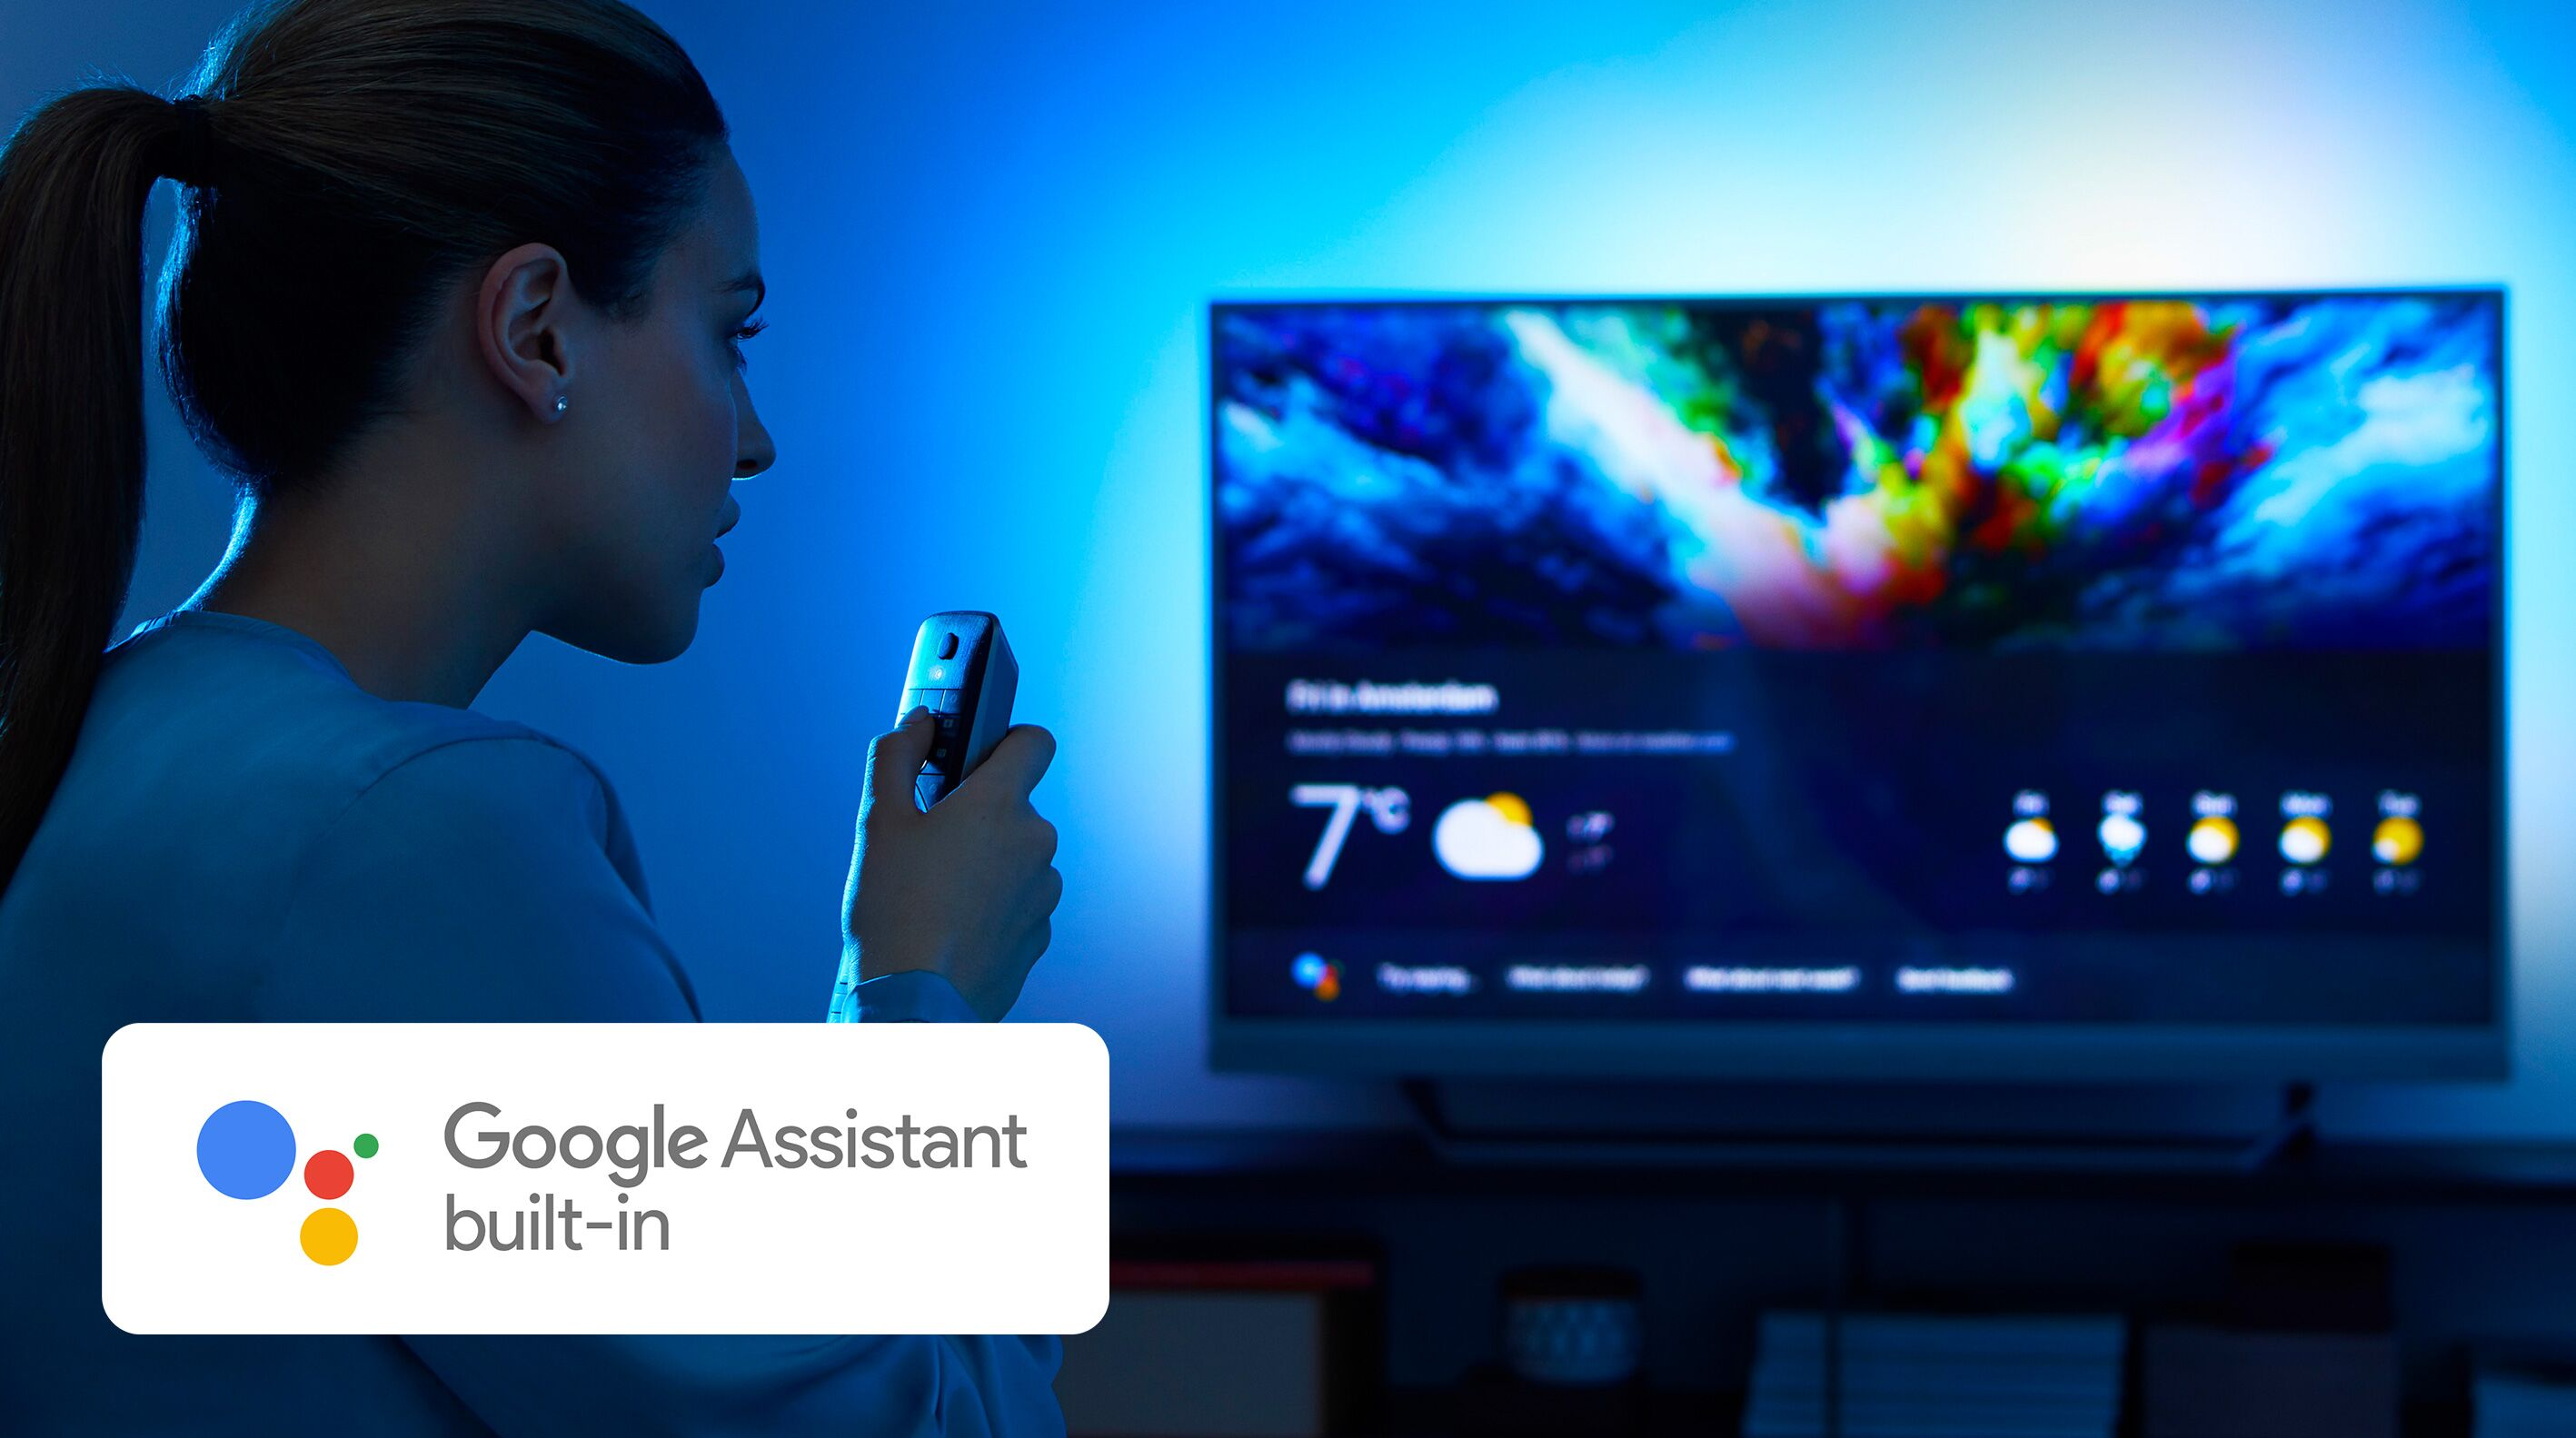 Philips OLED 903 Google assistant